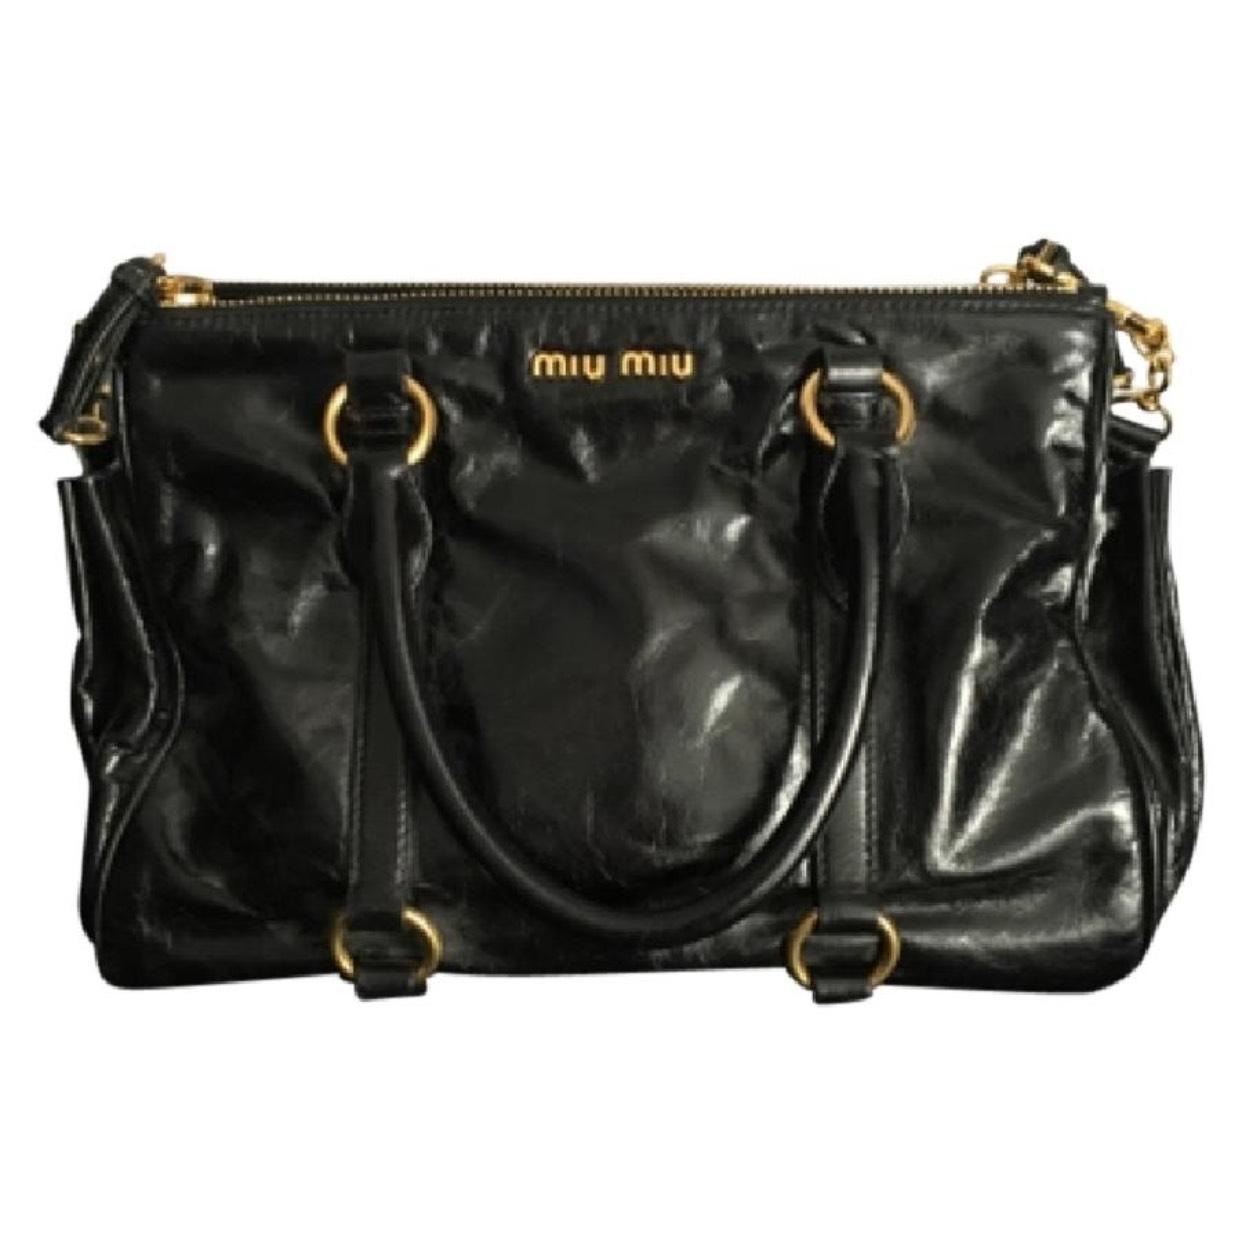 Miu Miu Shoulder Bag